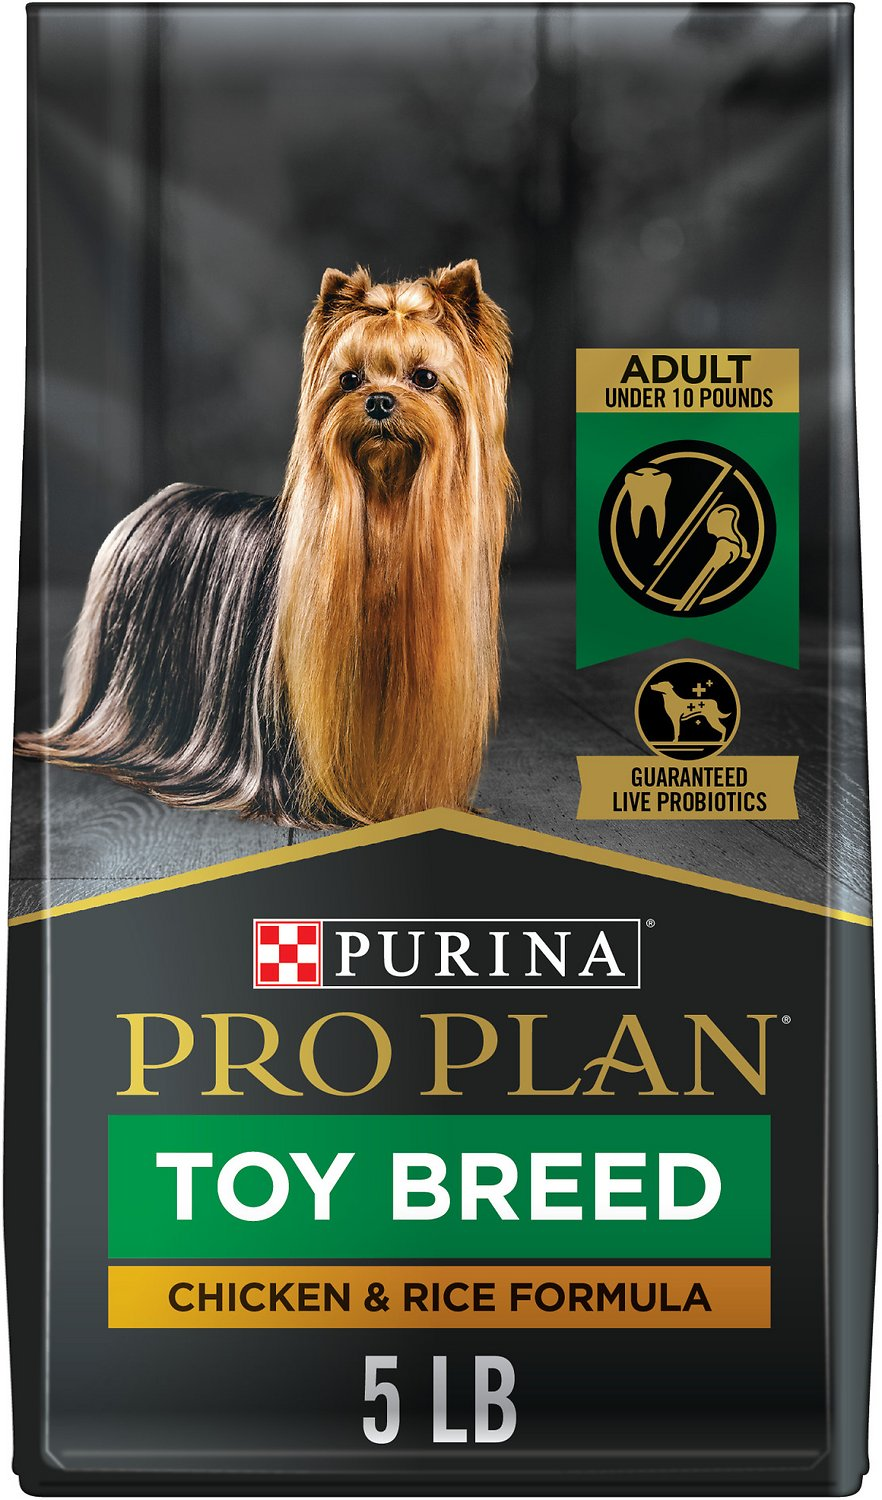 Purina Pro Plan Cat Food >> Purina Pro Plan Focus Adult Toy Breed Formula Dry Dog Food, 5-lb bag - Chewy.com